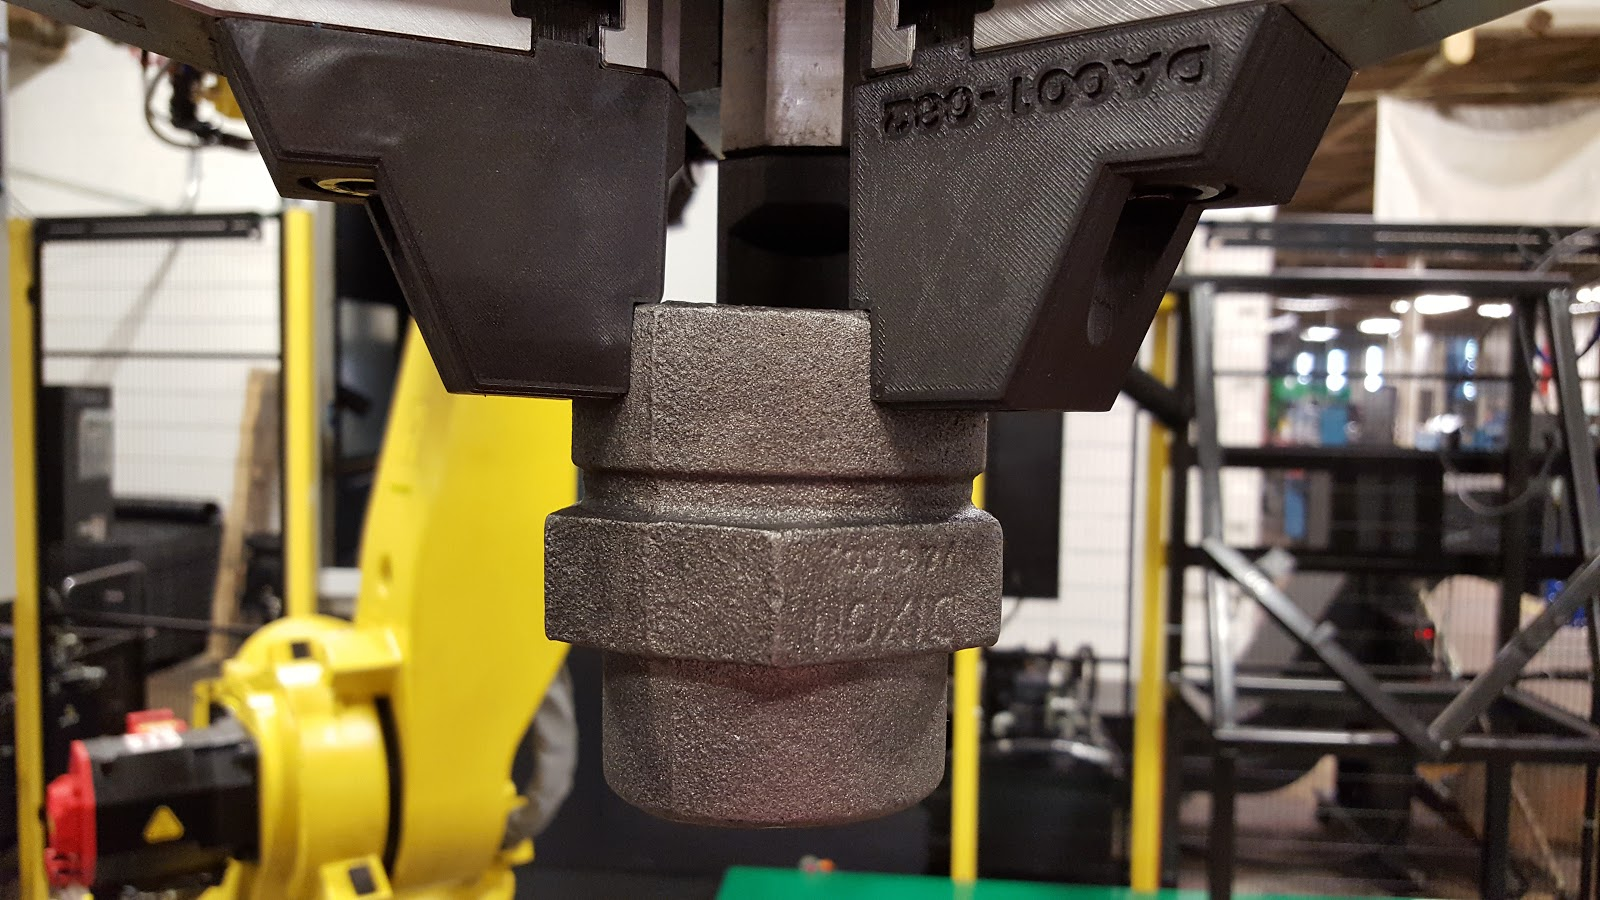 Introduction to 3D Printing: What Are Composites?